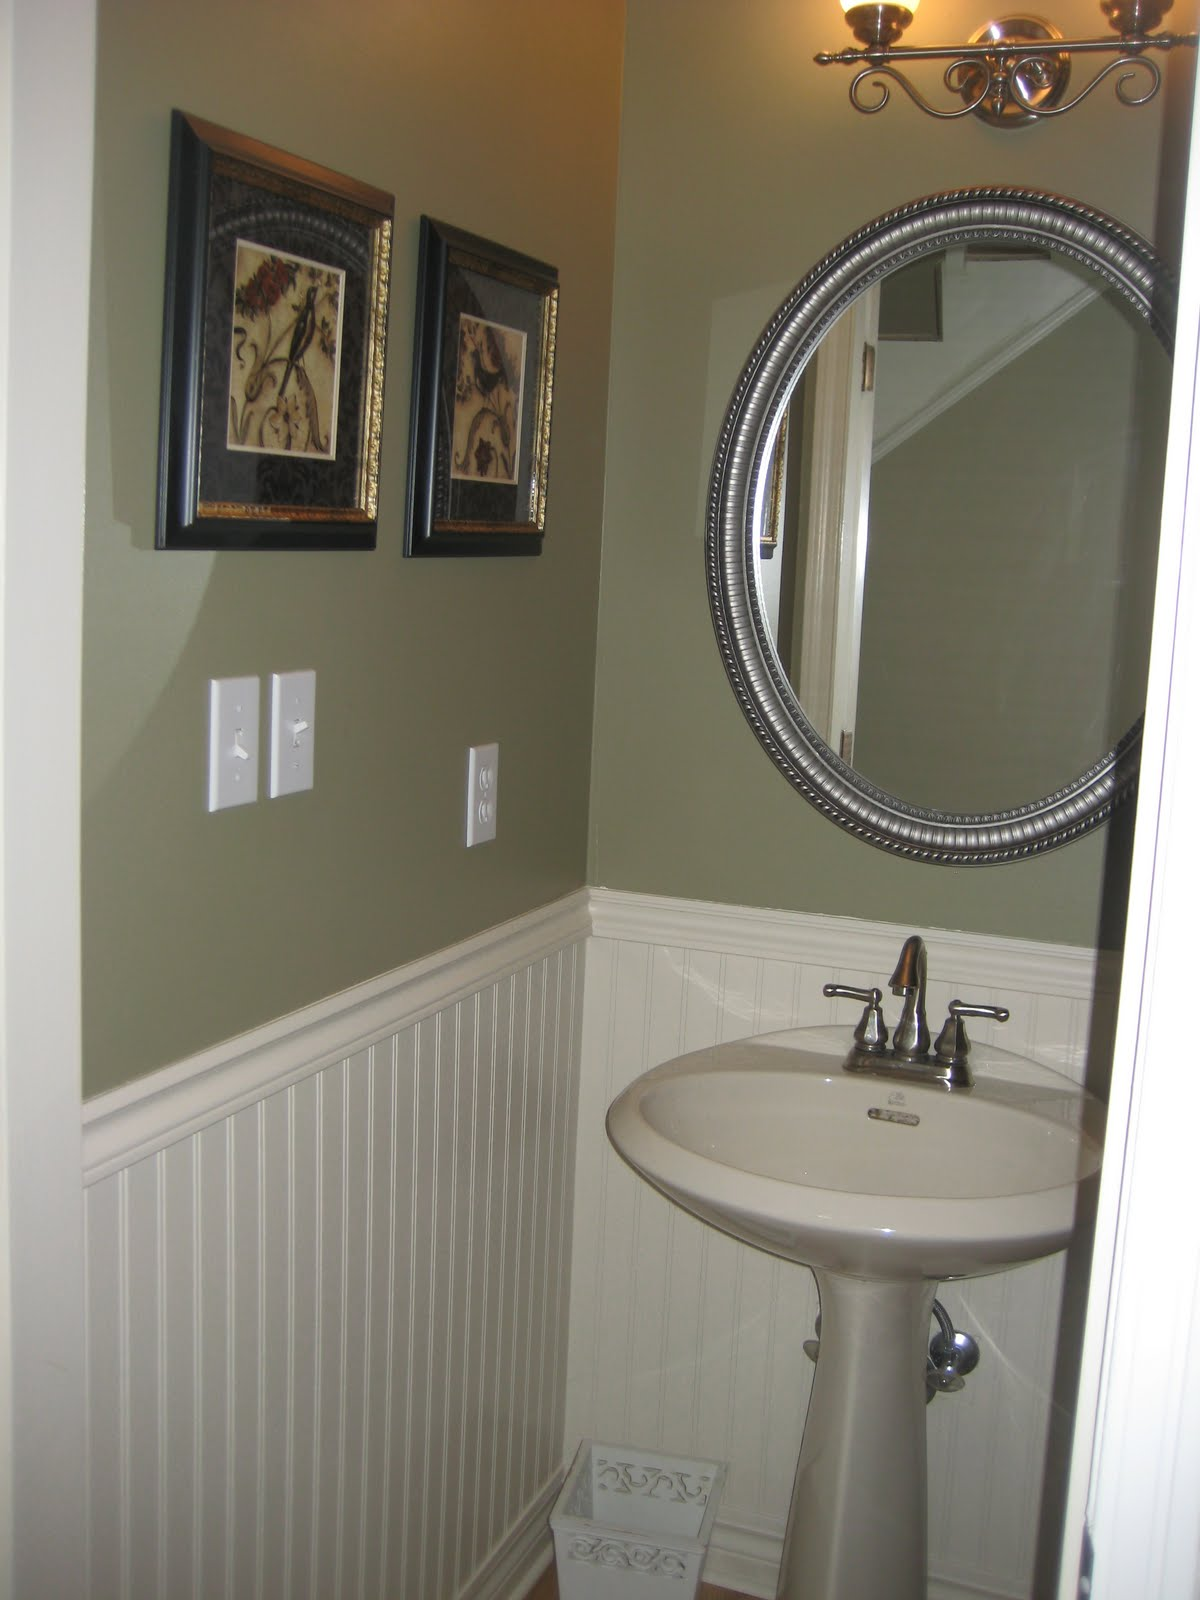 Remodelaholic New Paint Job In Small Bathroom Remodel Guest Remodel